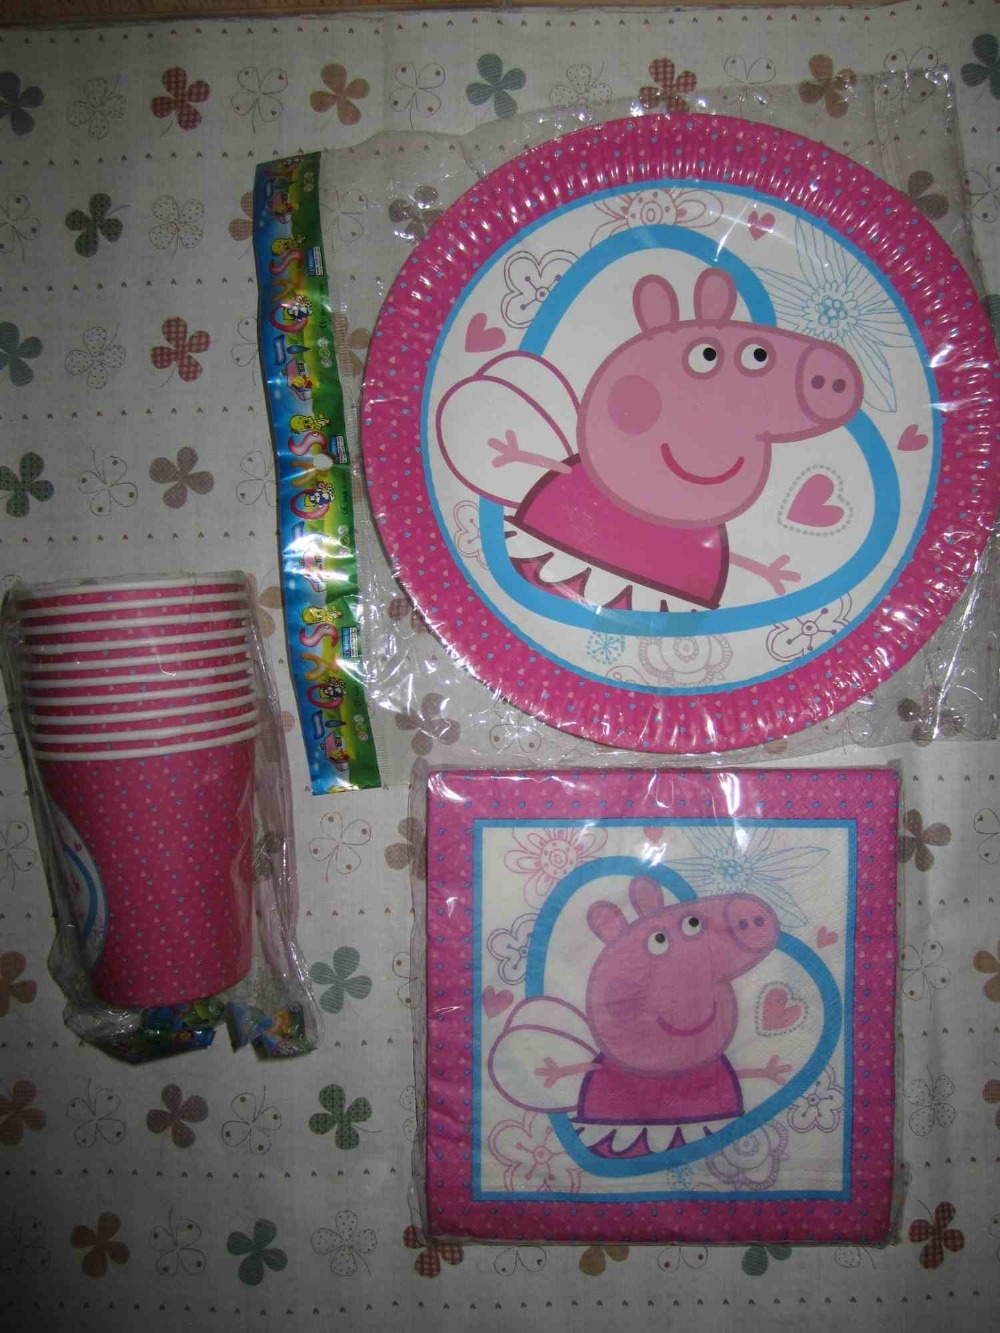 New style PINK PIGS 40pcs/set Cartoon Disposable Paper Cups/Glass+ Plates Kids Boys birthday favors Party Decoration Supplies